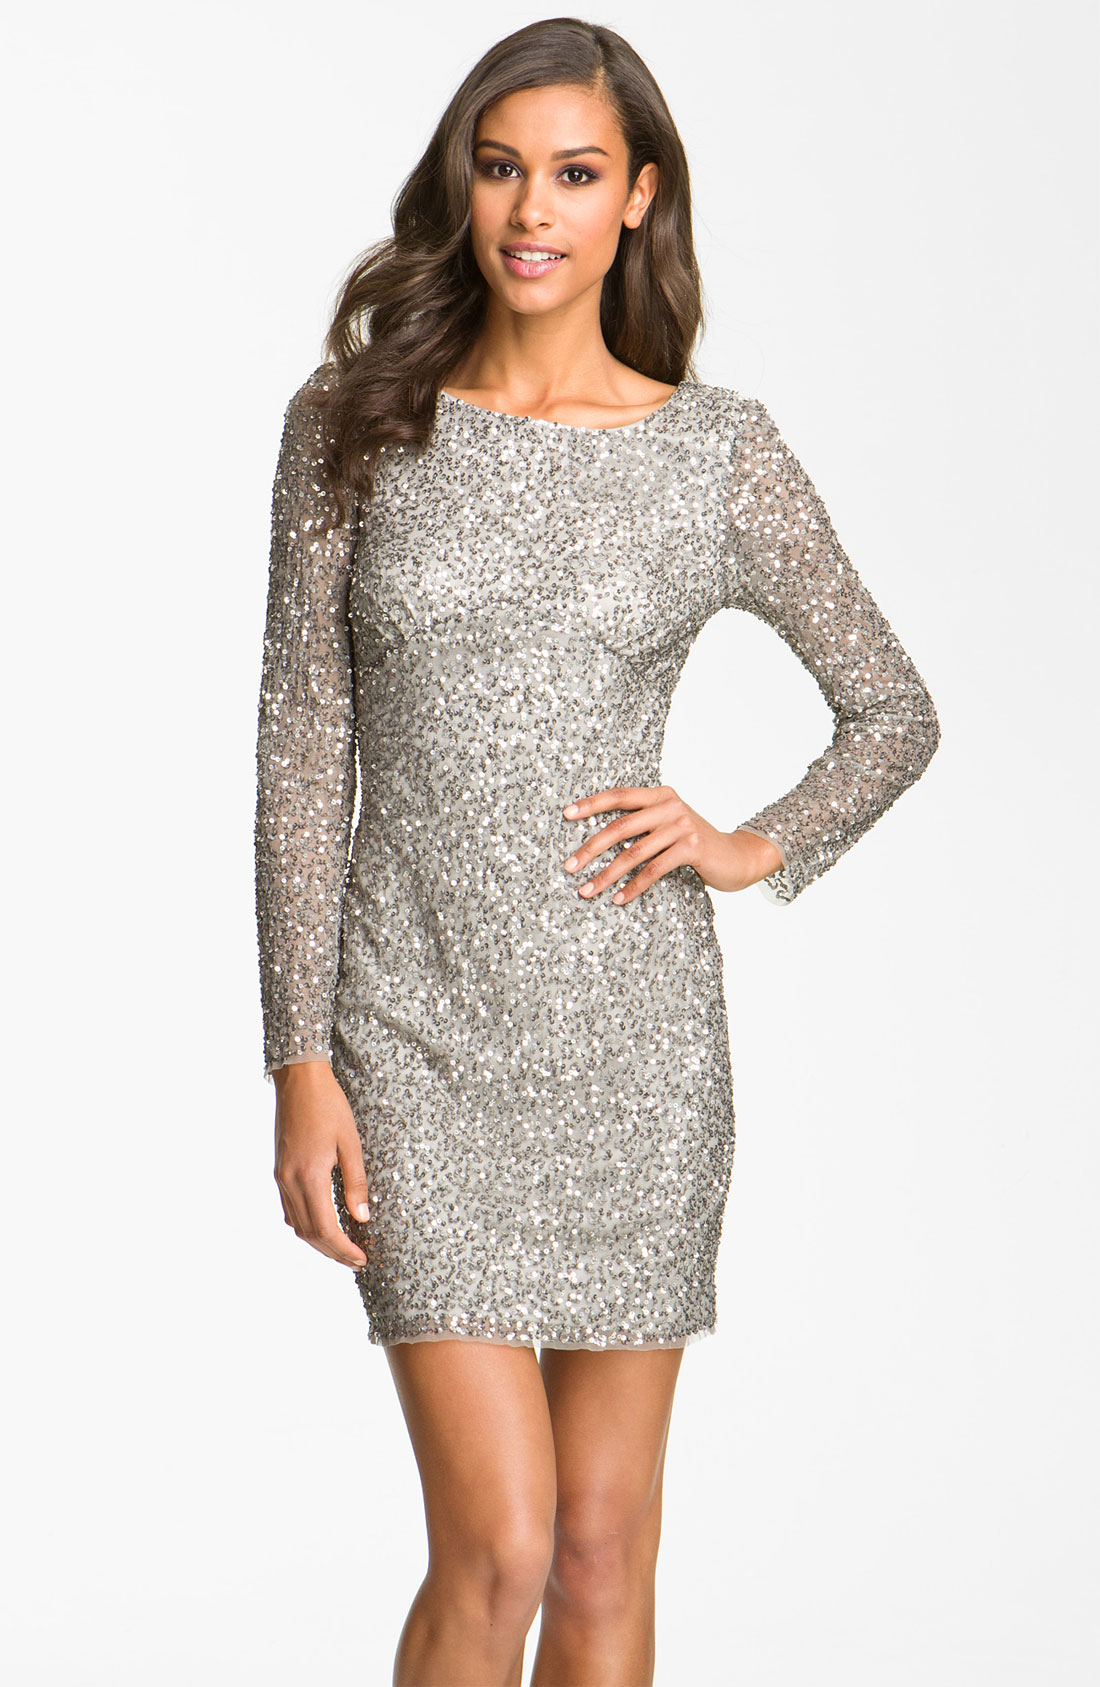 Silver Sequin Dress | Dressed Up Girl